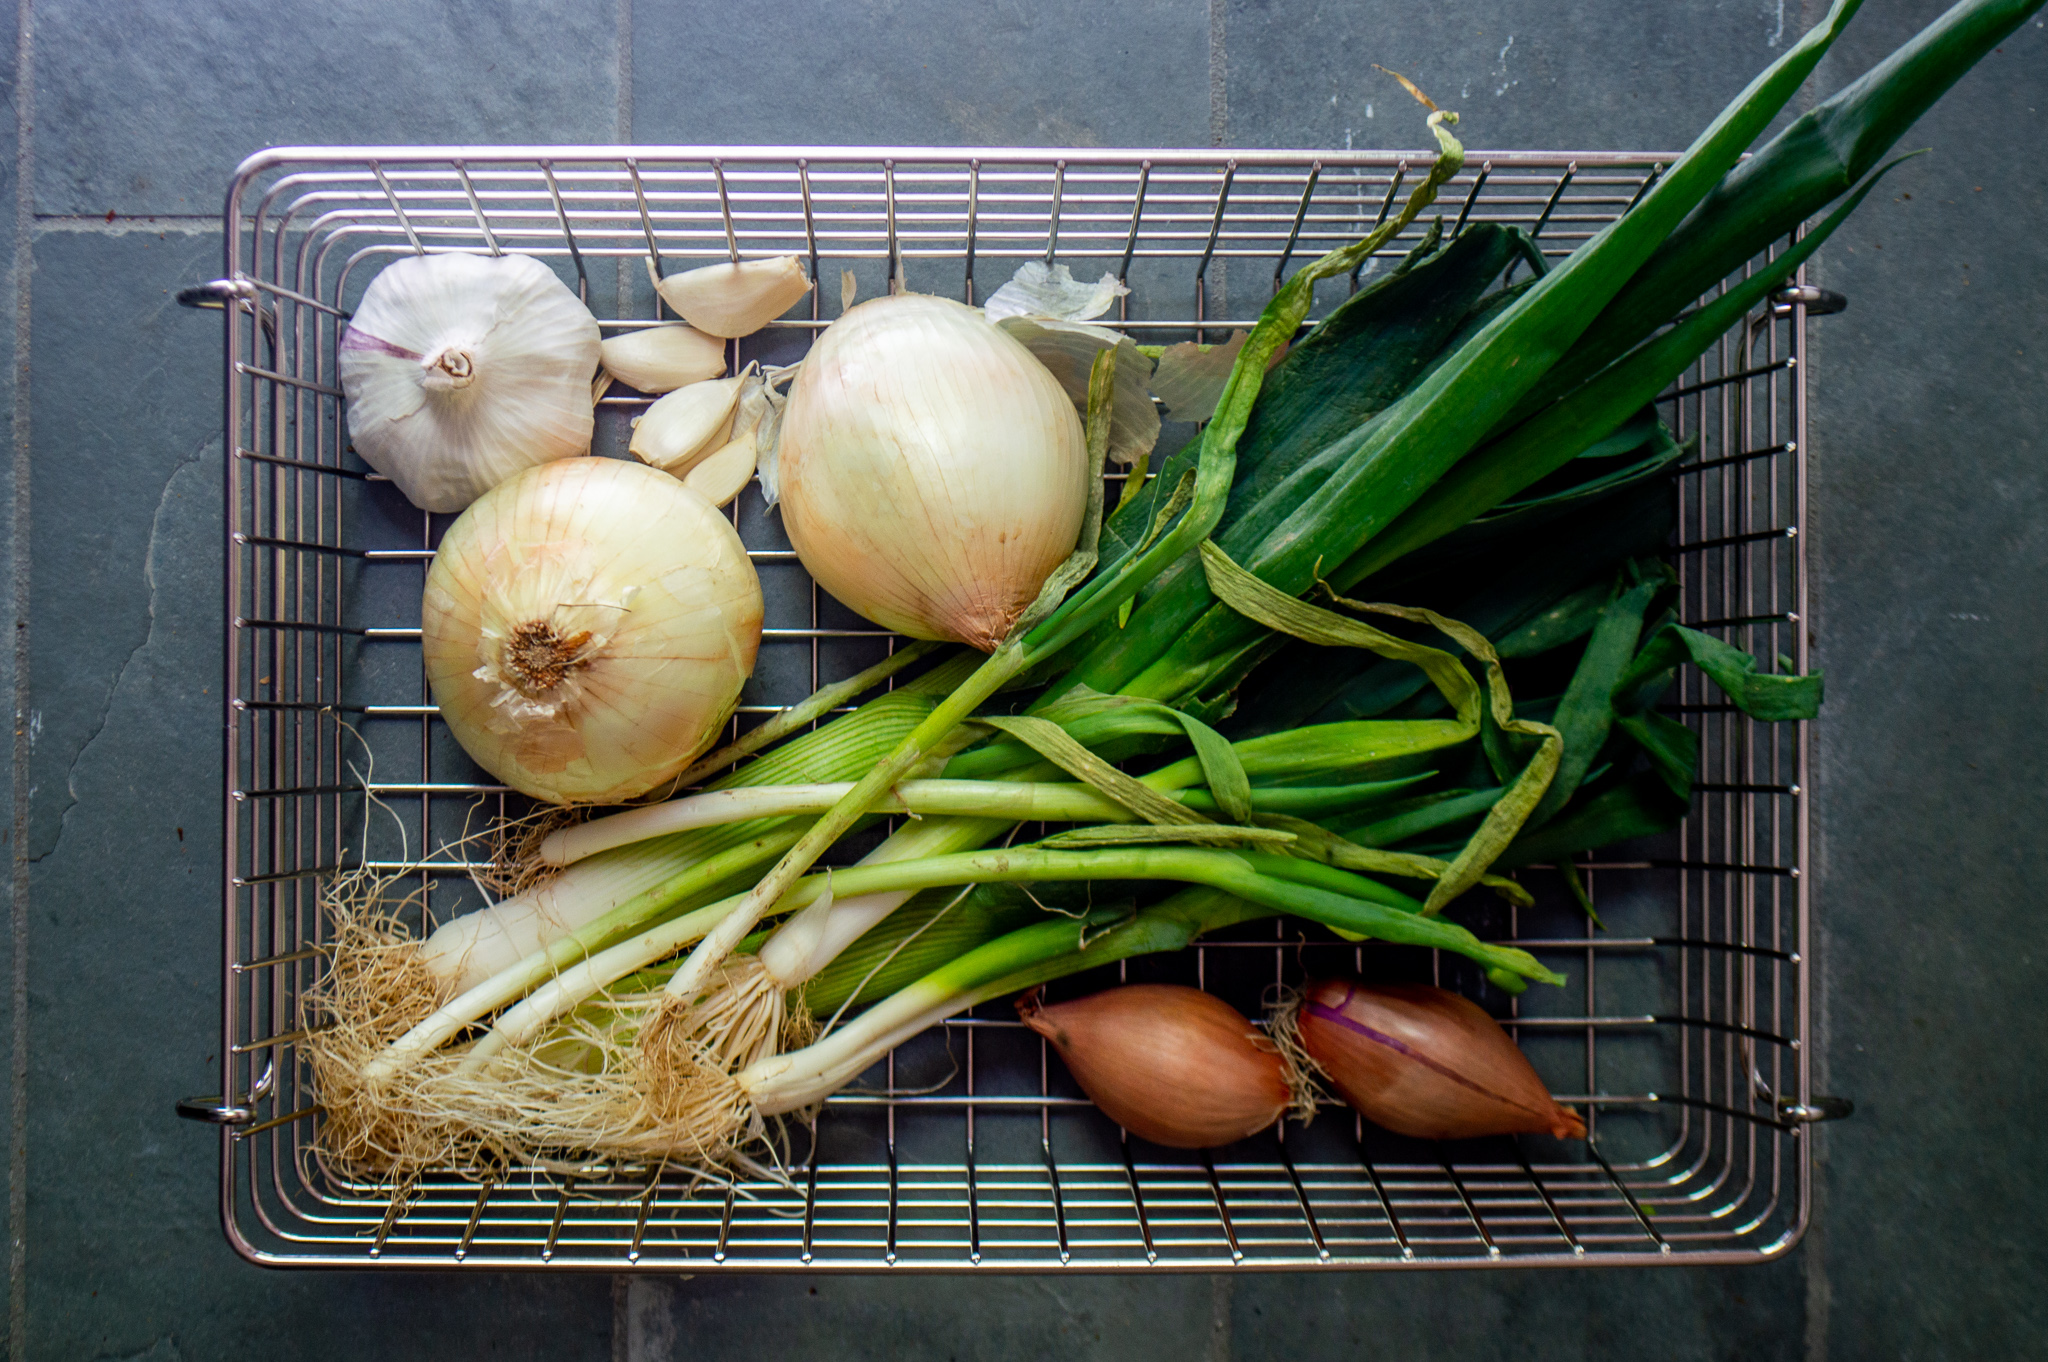 alliums including onion, garlic, scallions, leeks and shallots